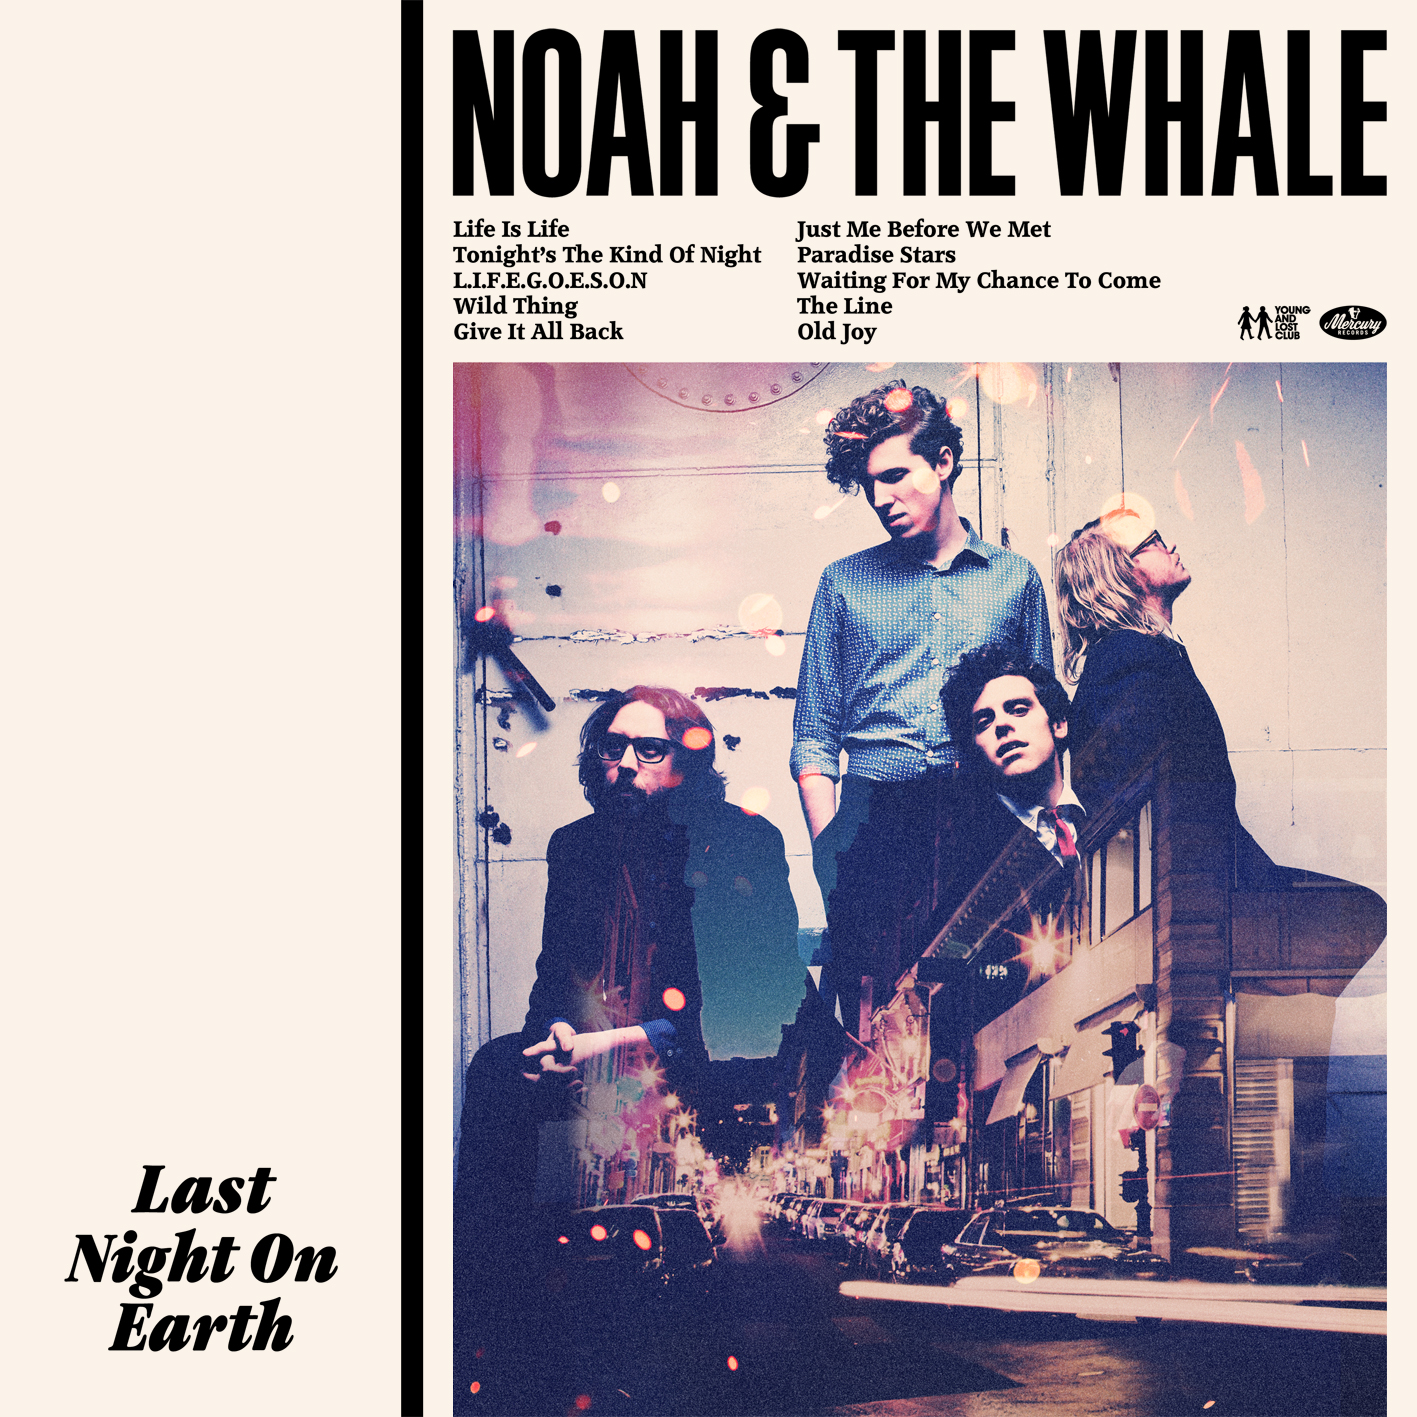 [10's] Noah And The Whale - L.I.F.E.G.O.E.S.O.N. (2011) Noah%20And%20The%20Whale%20-%20Last%20Night%20on%20Earth